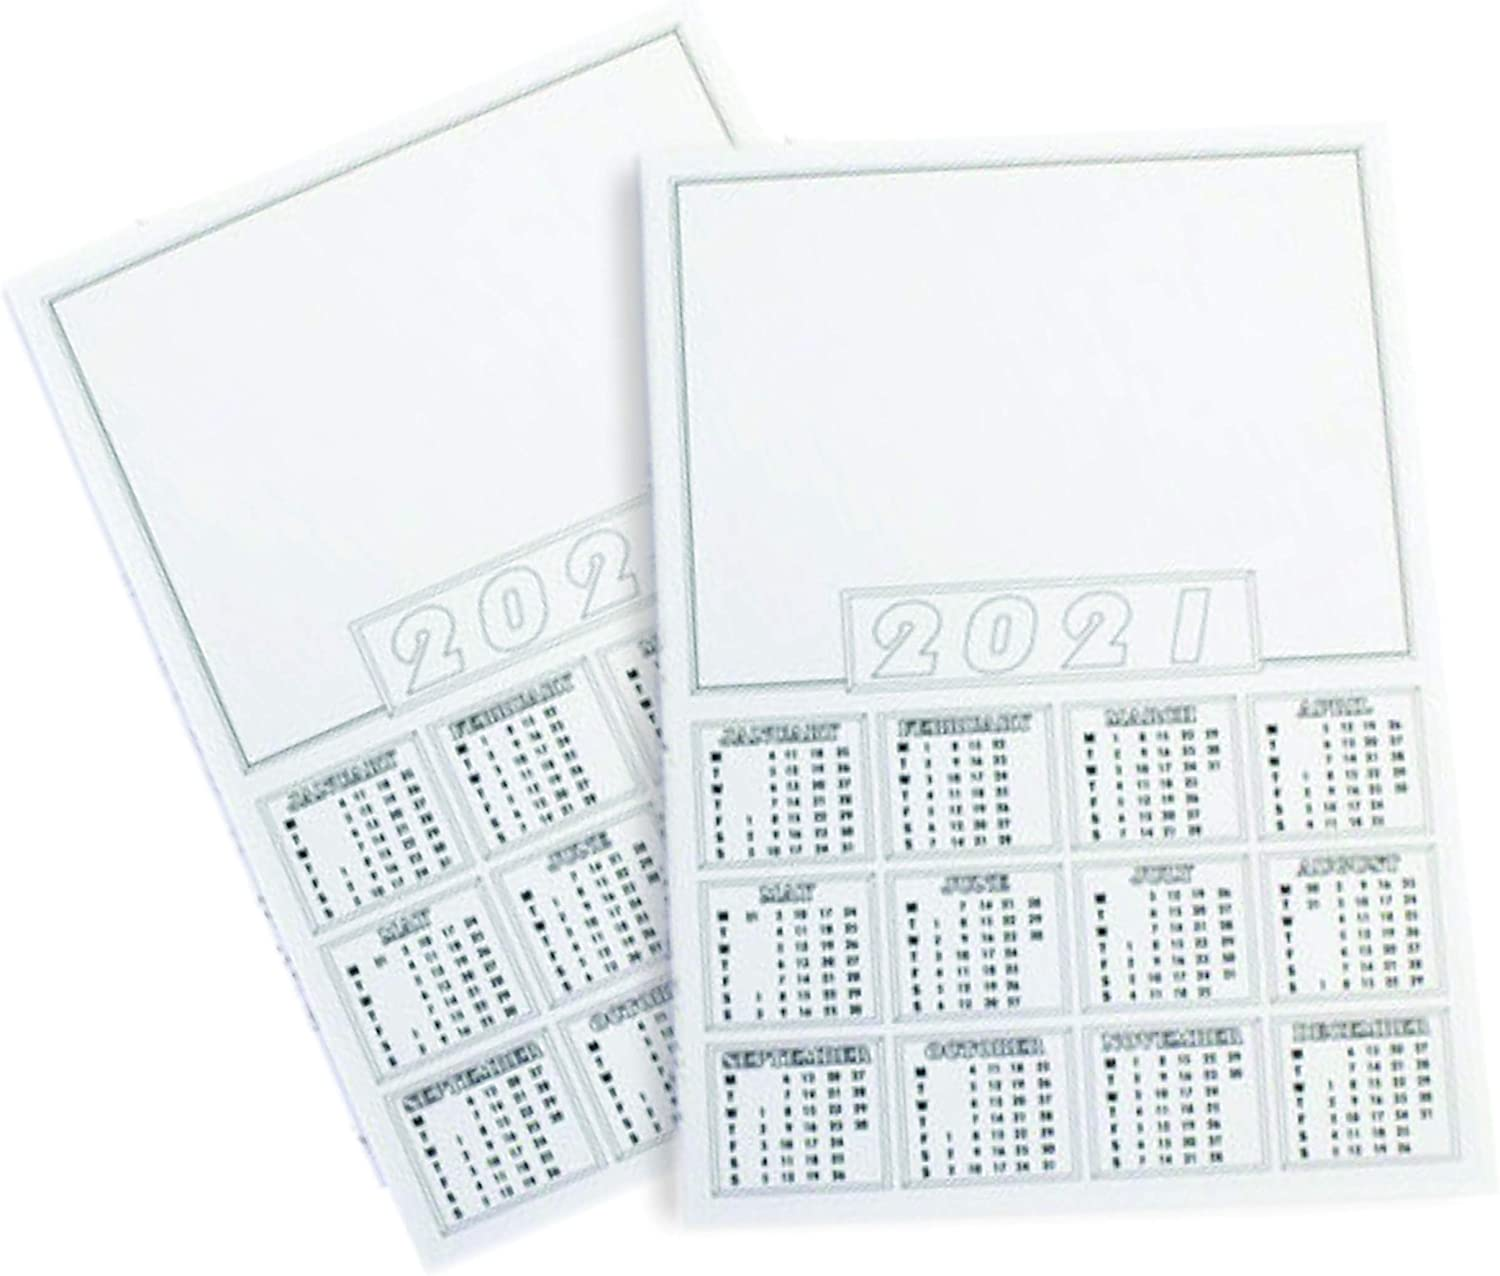 2021 Blank Calendar Wall Planner Organizer A4 Blank Planner White Mini Desk Calendar Year to View Academic Make Your Own Home Student Stationery Office Supplies for Kids to Decorate Pack of 5